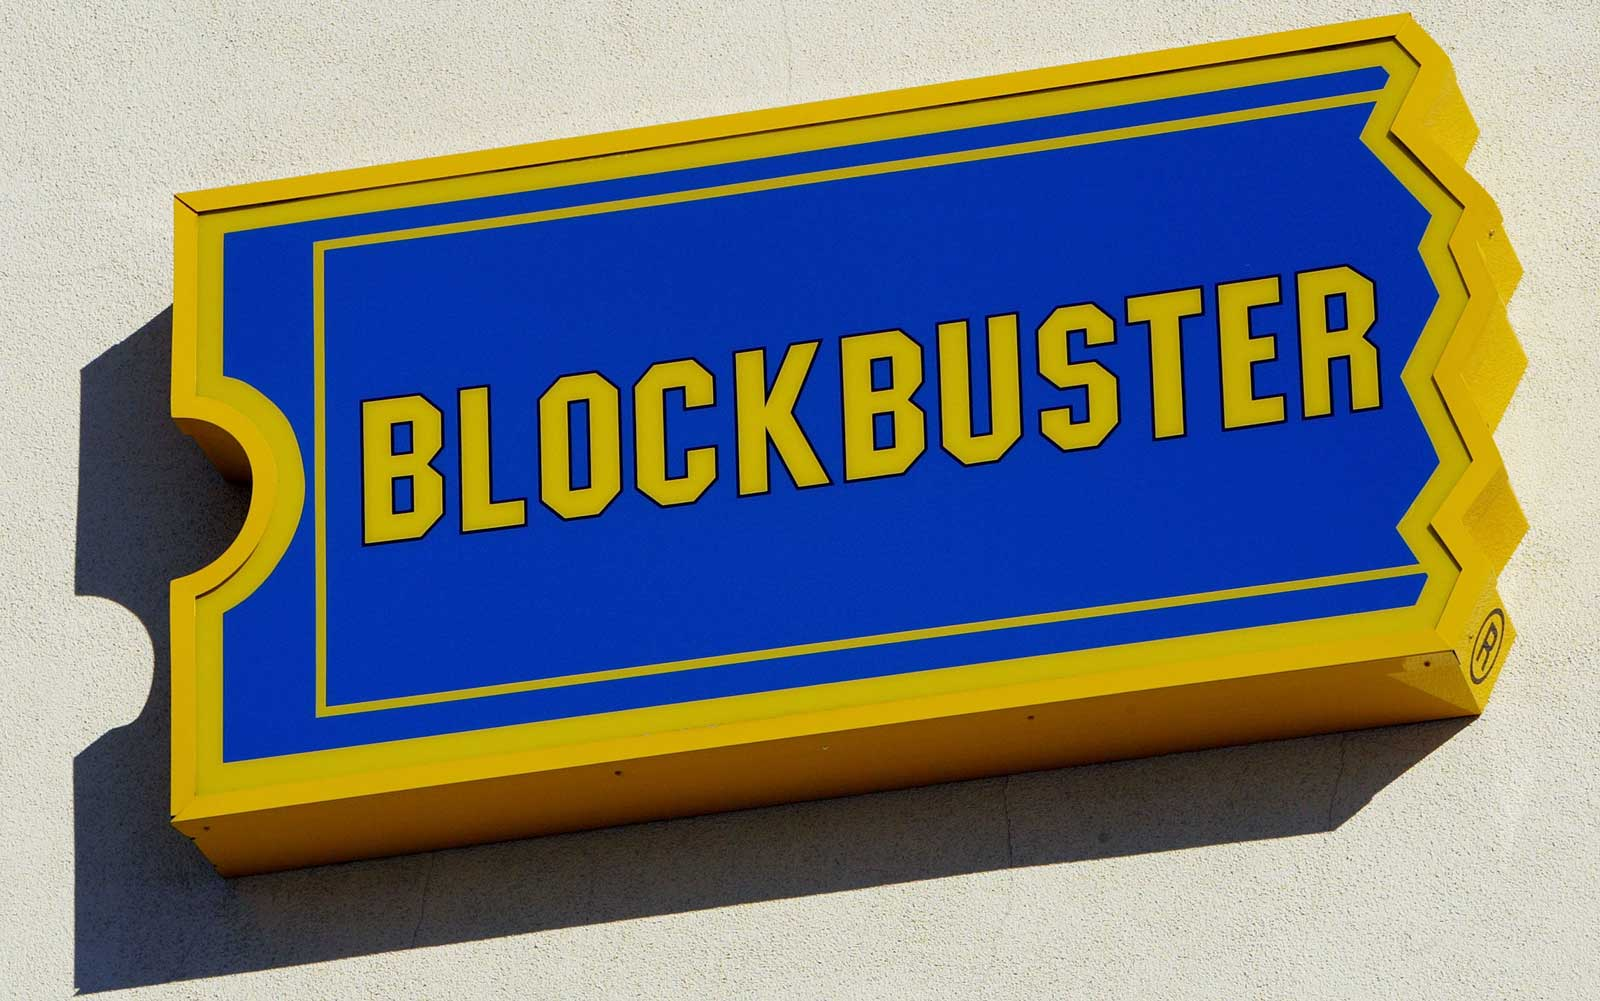 Blockbuster themed pop up coming to NYC